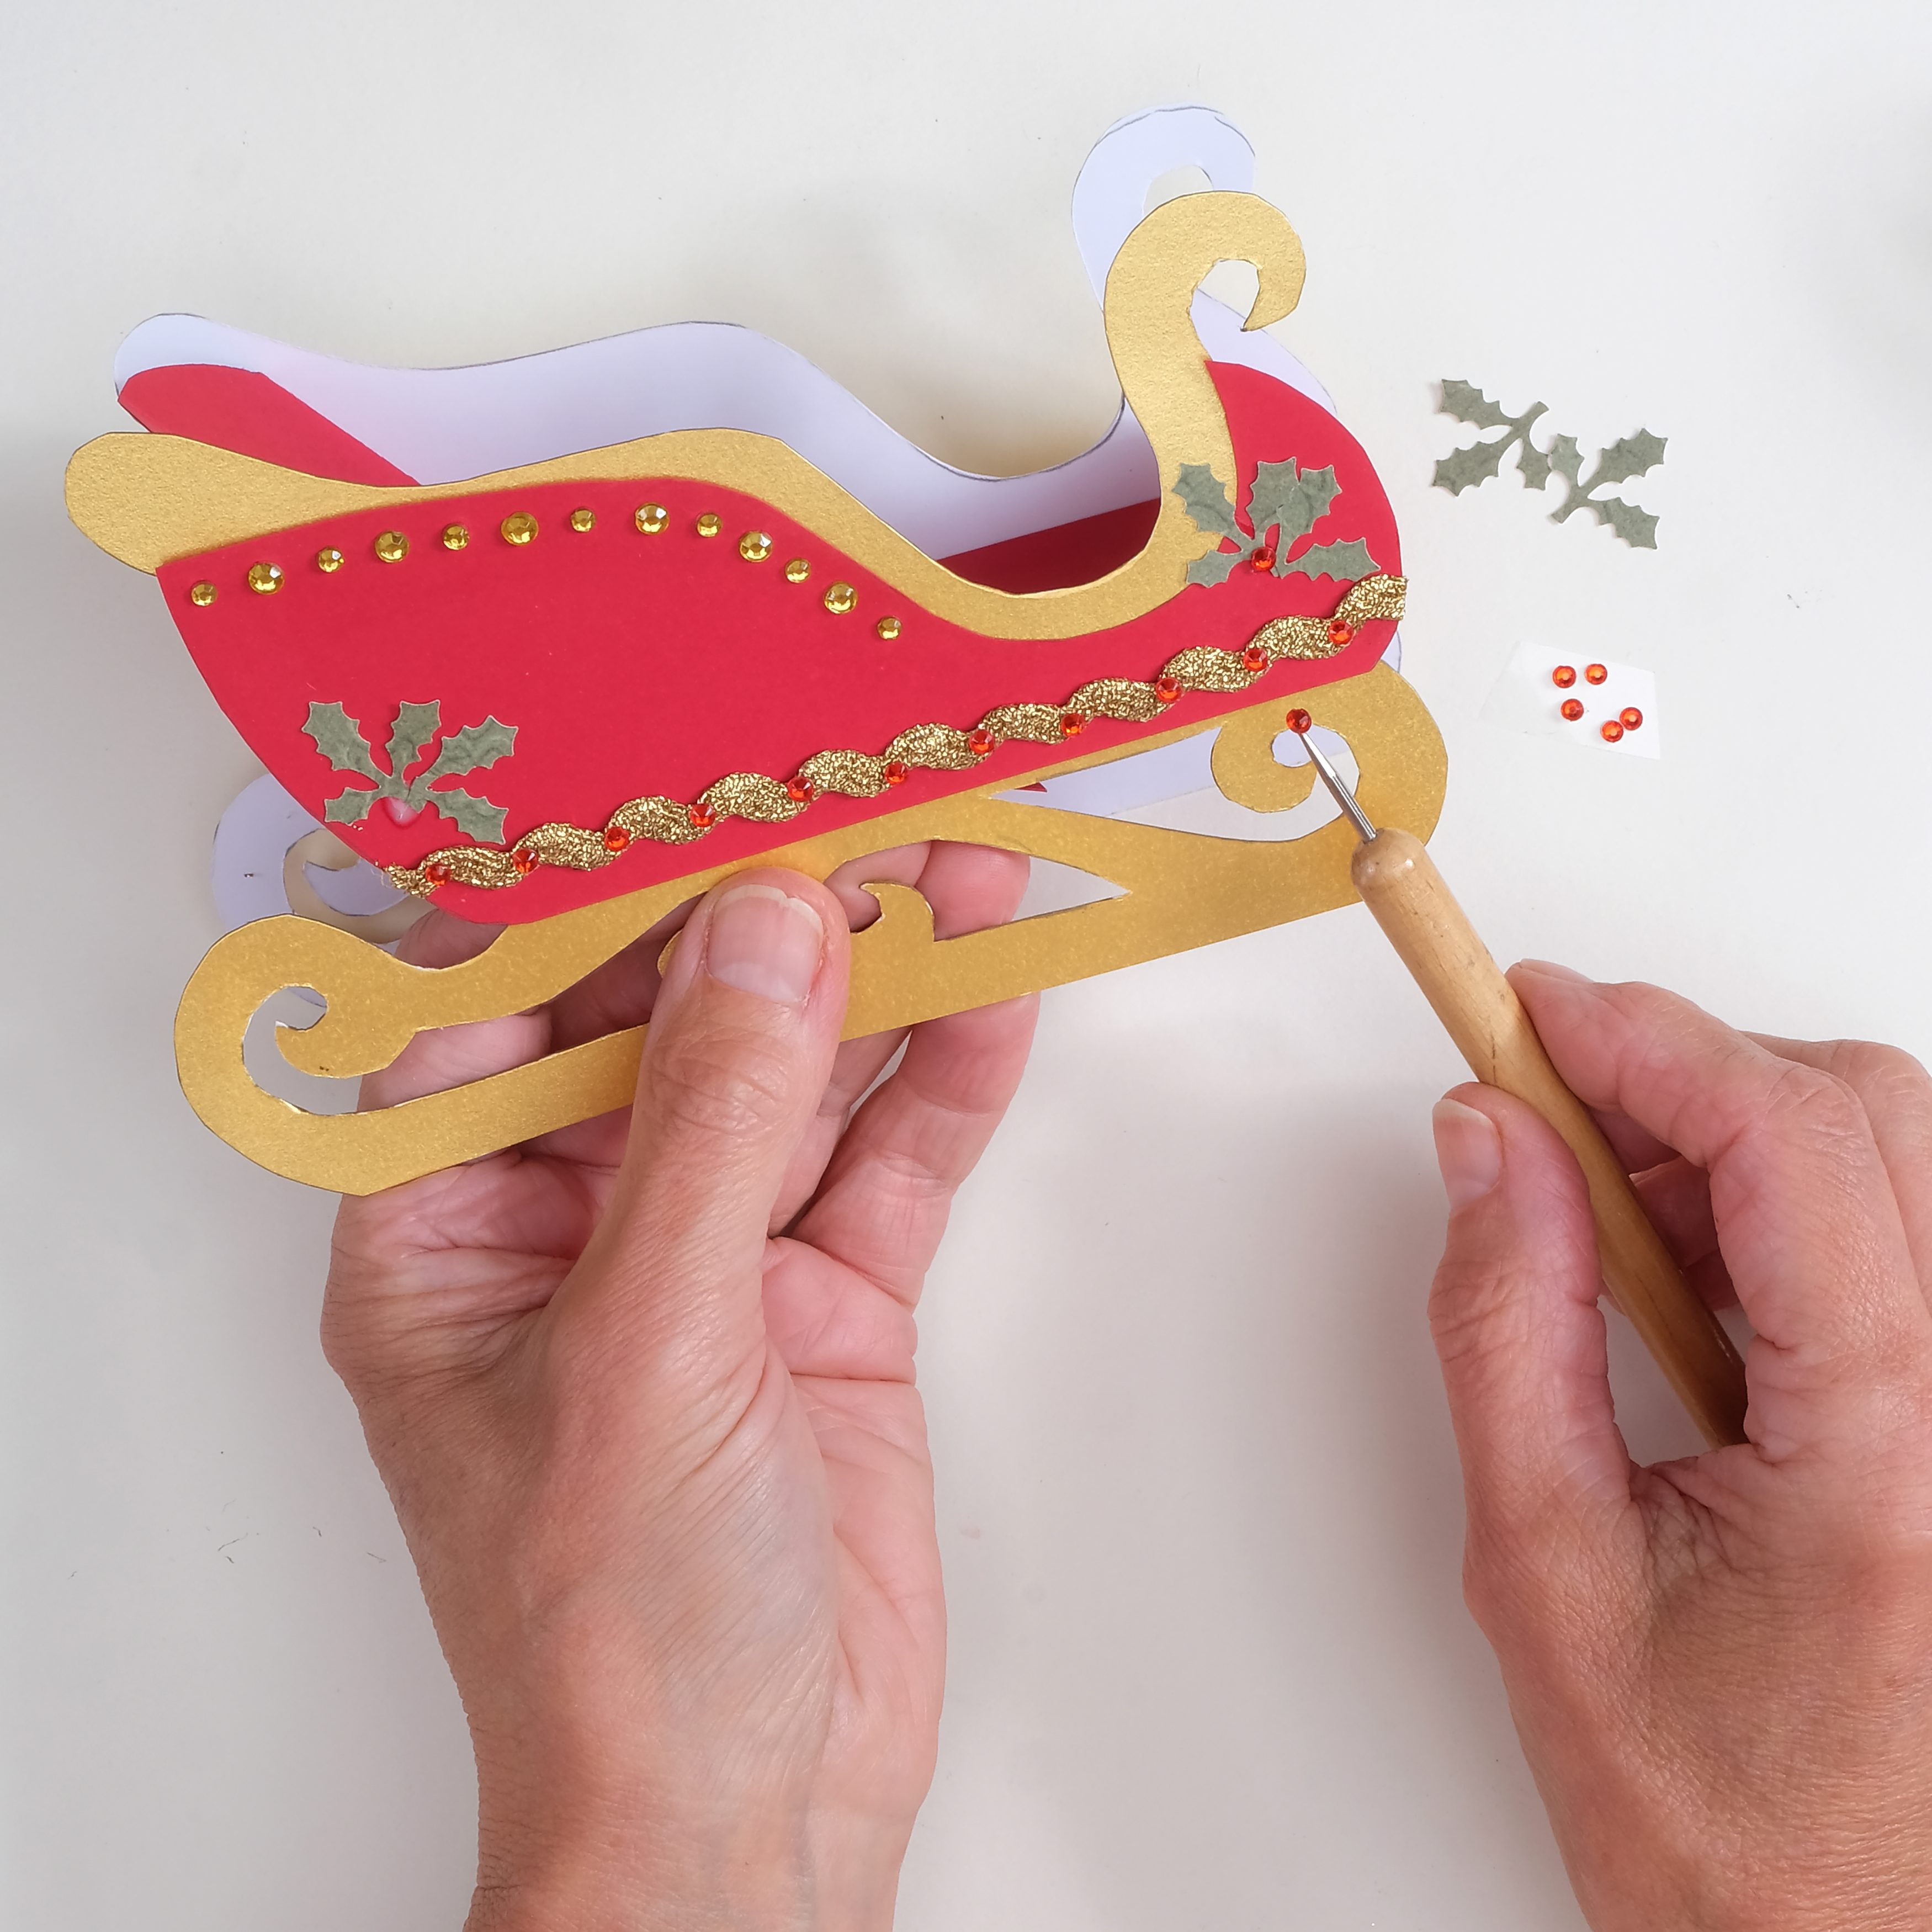 How to craft a papercraft Santa's sleigh